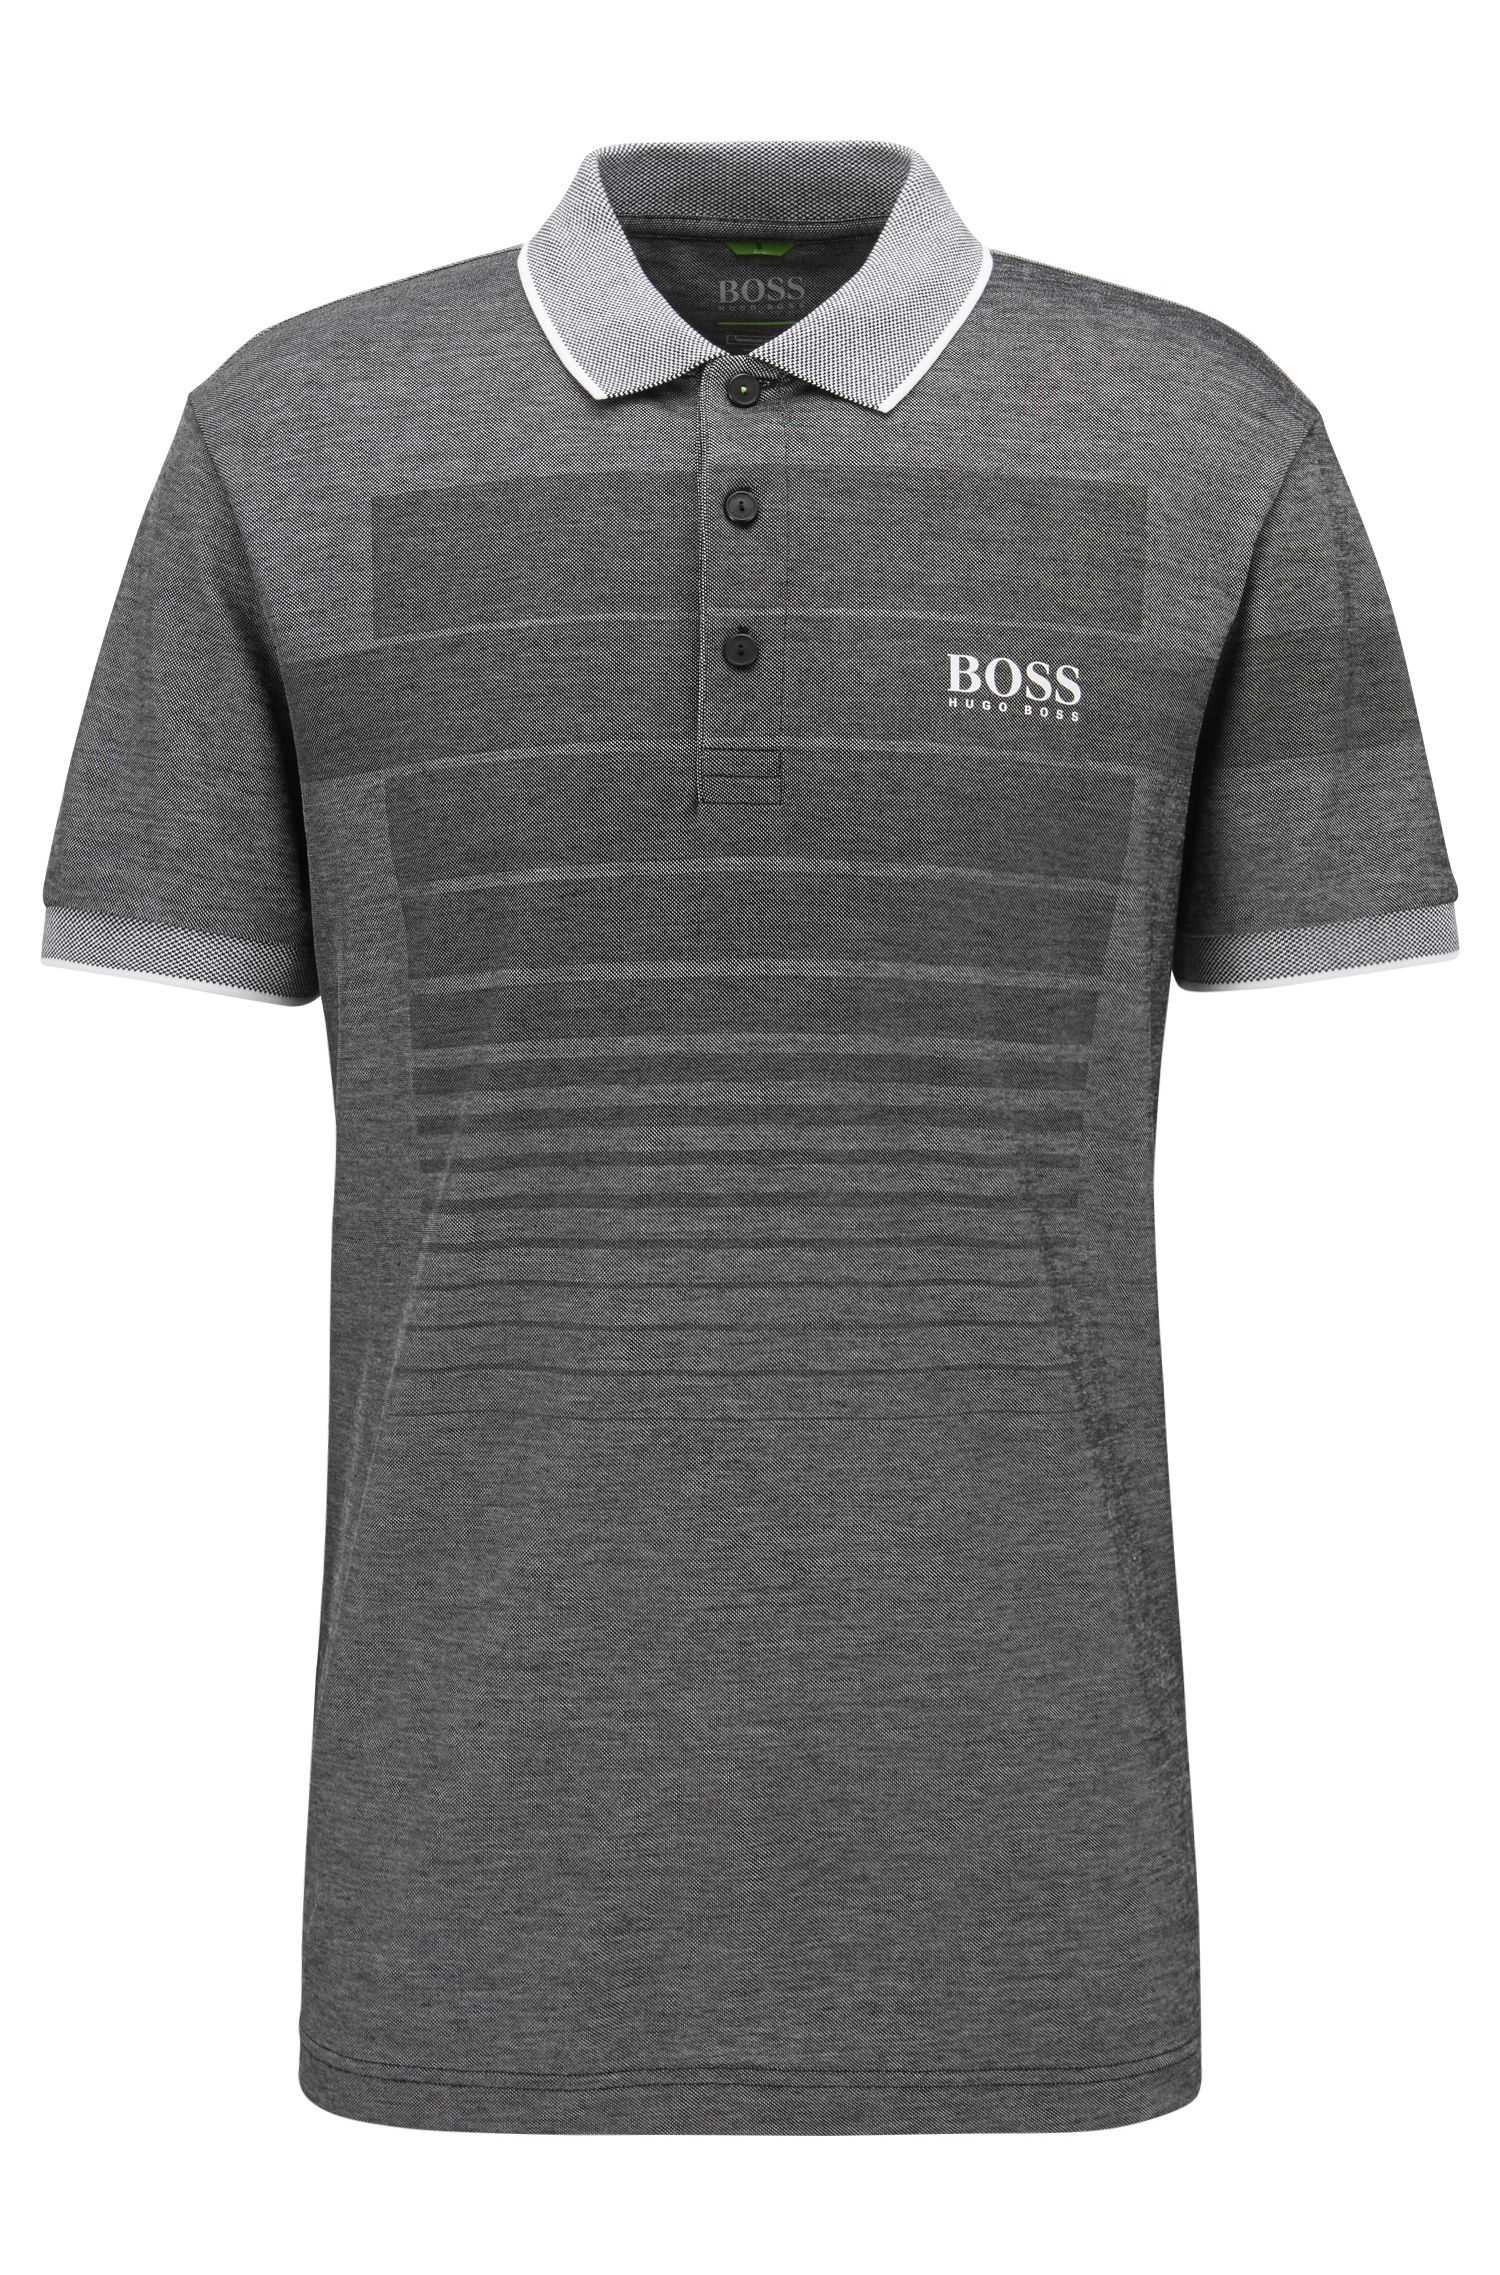 Cotton-blend patterned polo shirt with contrast piqué collar